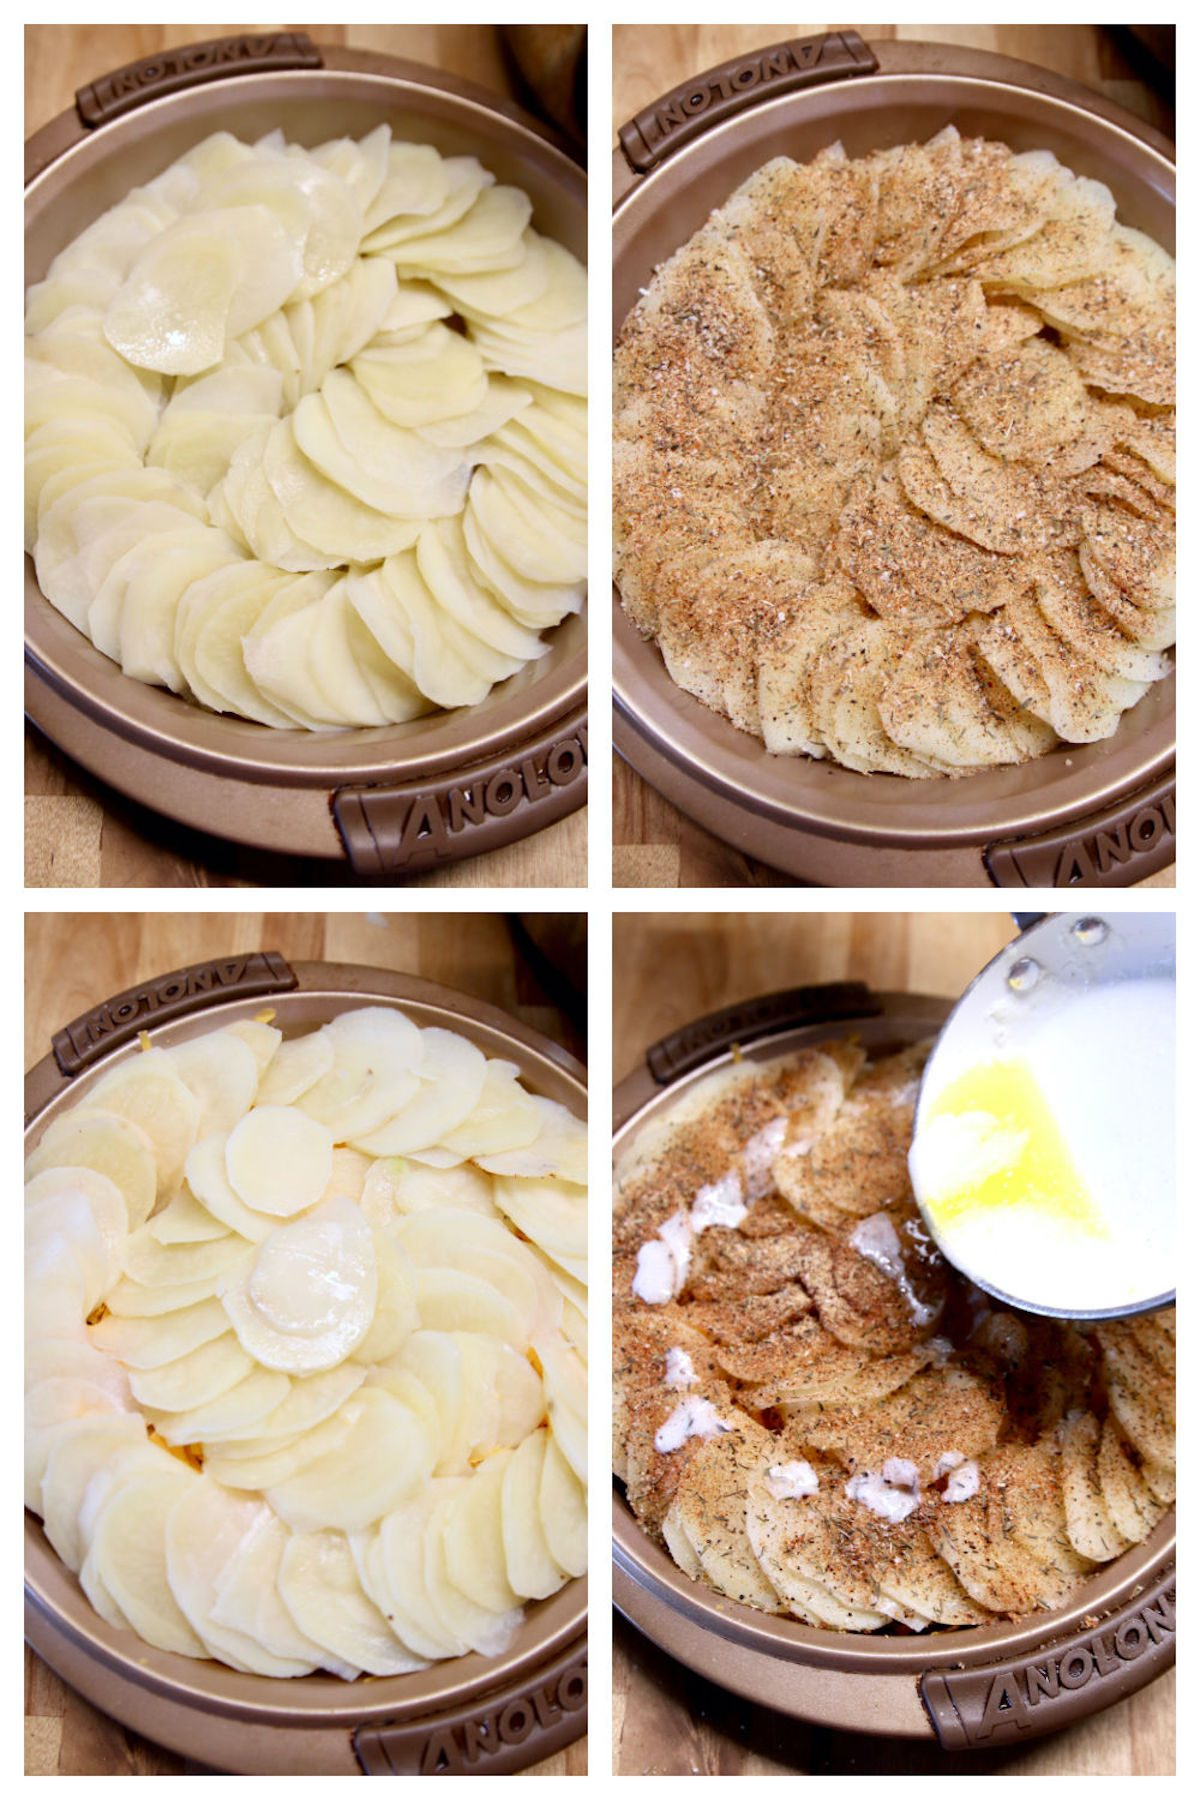 layering potatoes with spices and cheese in a round baking pan